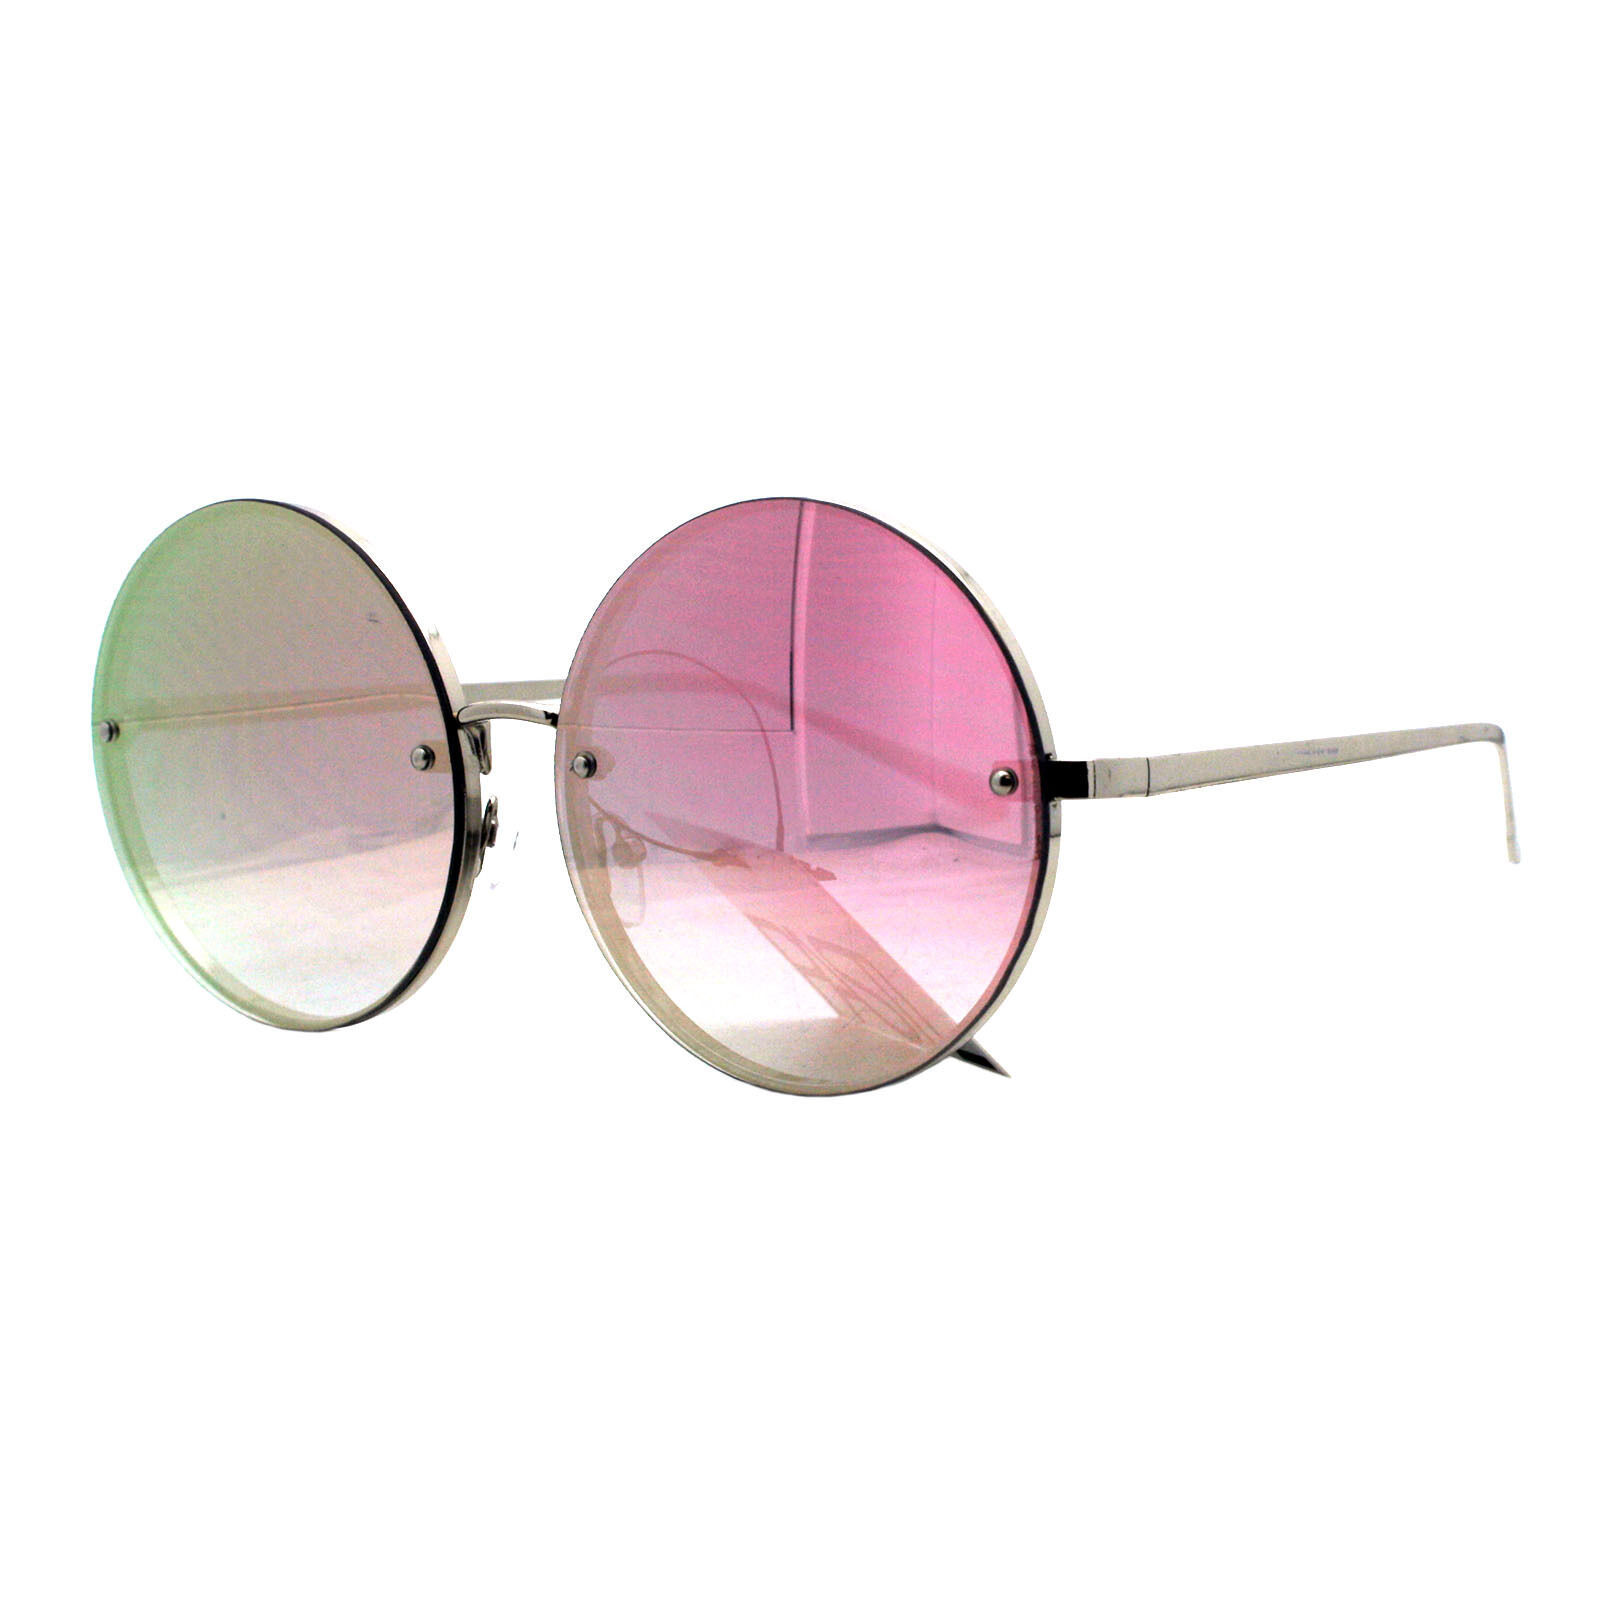 PASTL Super Oversized Round Sunglasses Womens Pink Mirror Lens UV 400 image 3